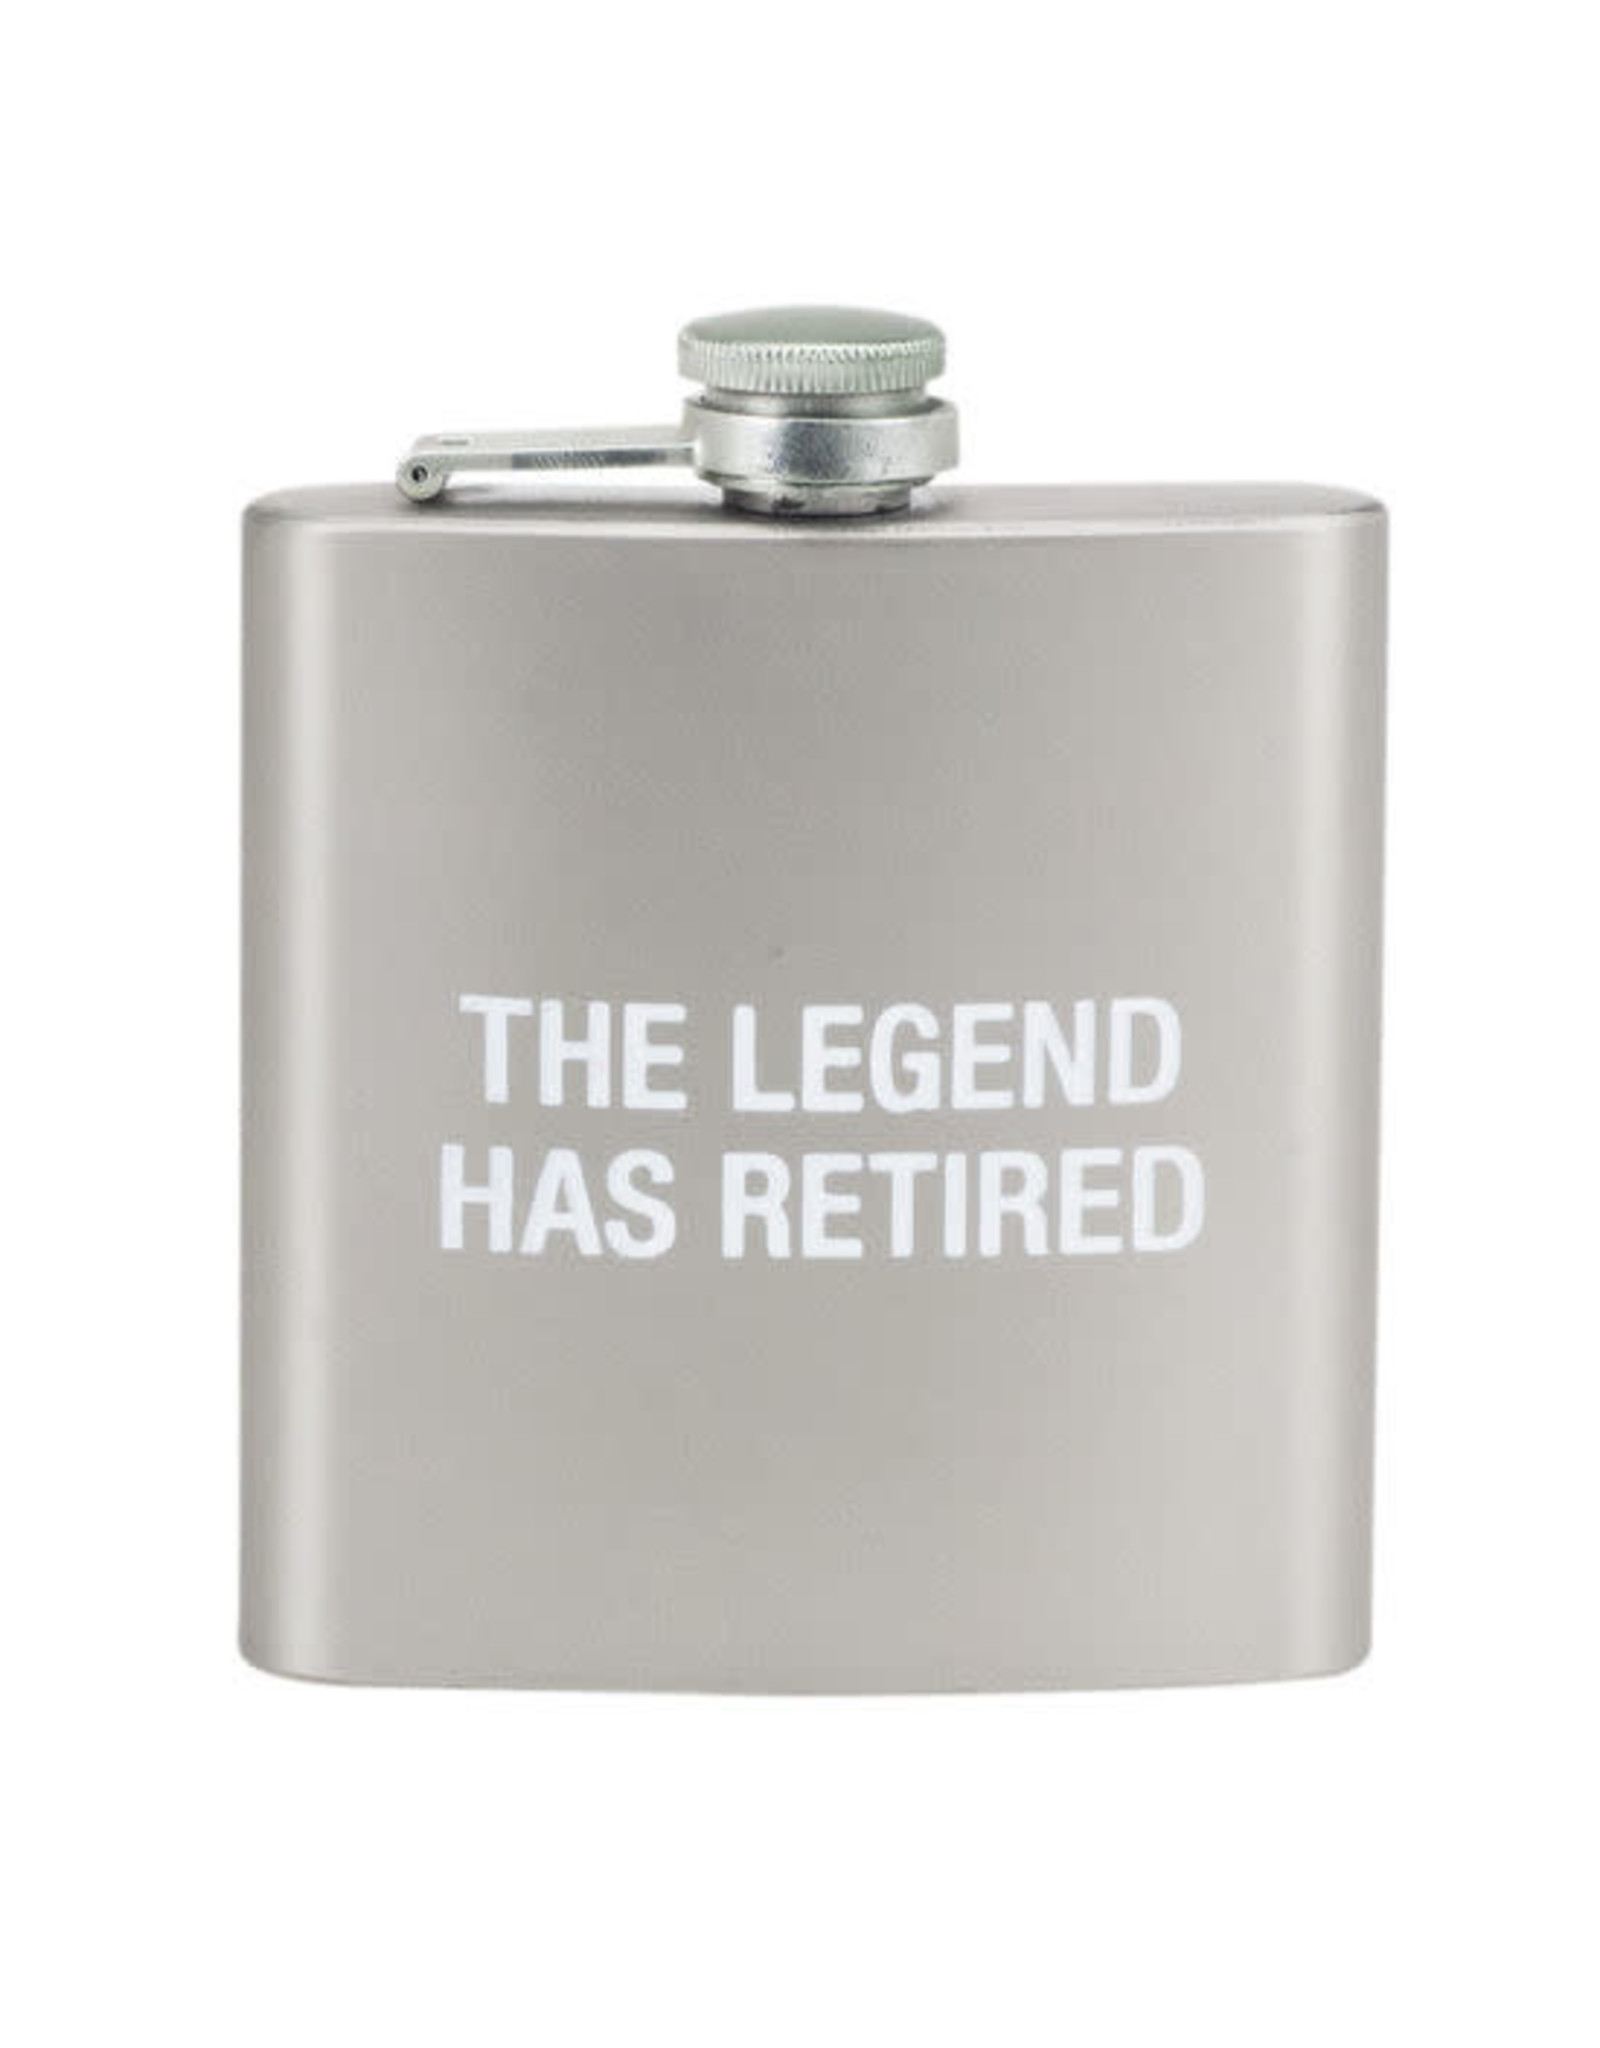 ABOUT FACE ABOUT FACE THE LEGEND HAS RETIRED FLASK